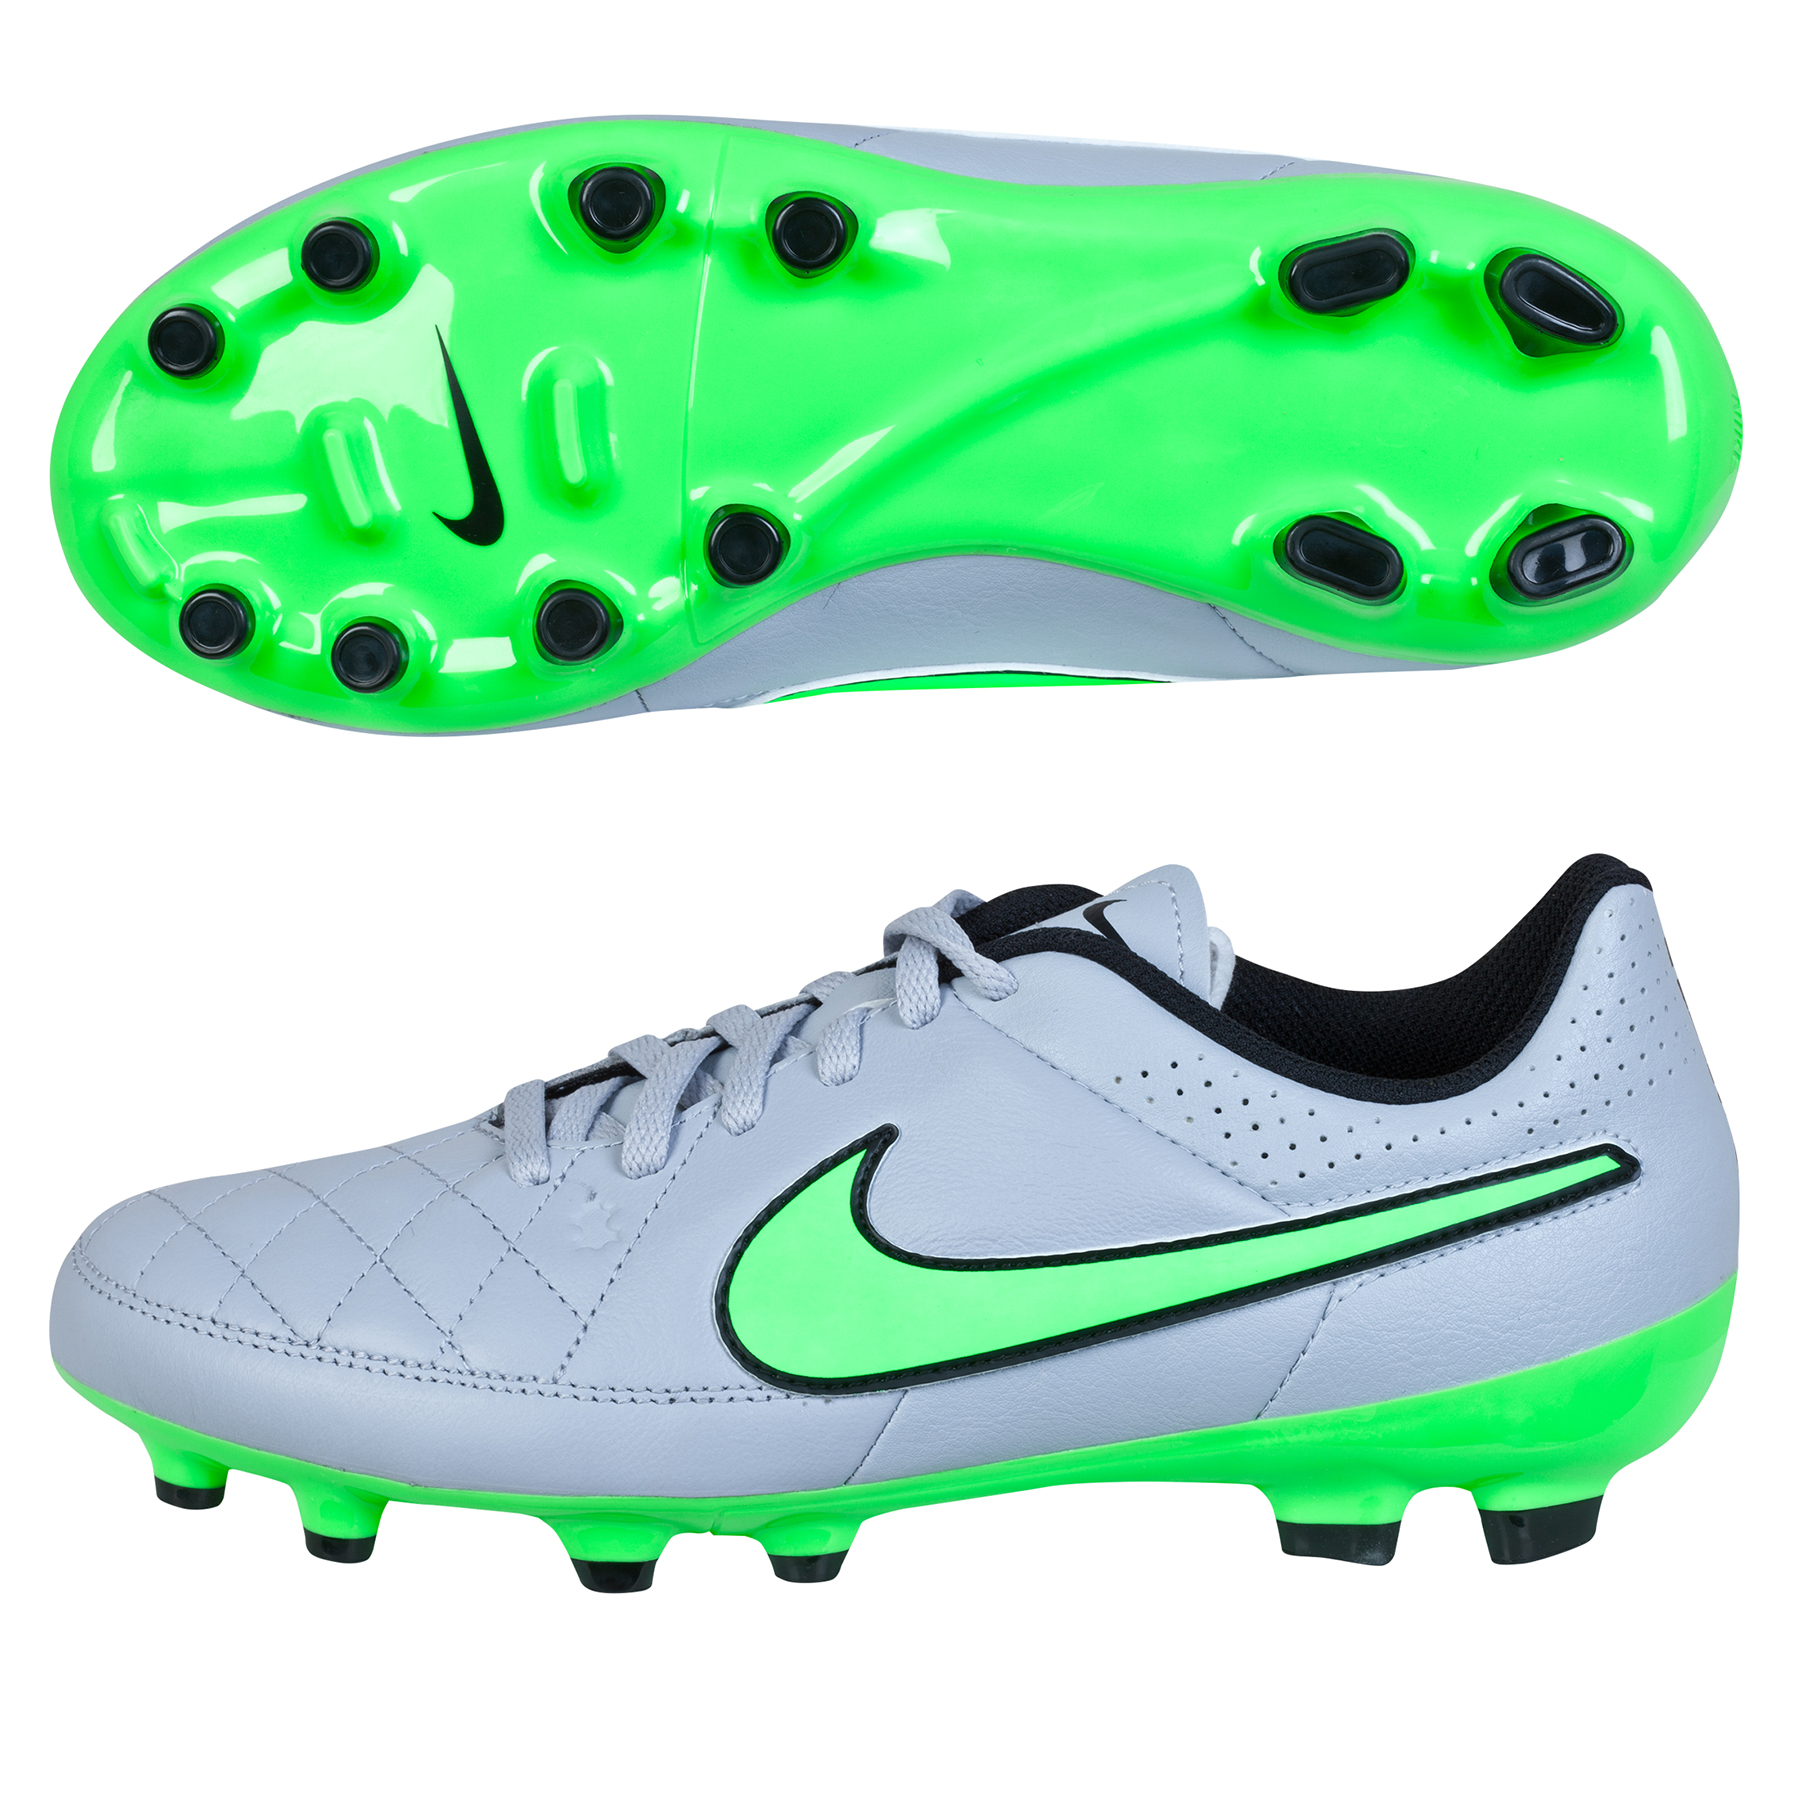 Nike Tiempo Genio Firm Ground Football Boots  Kids Lt Grey